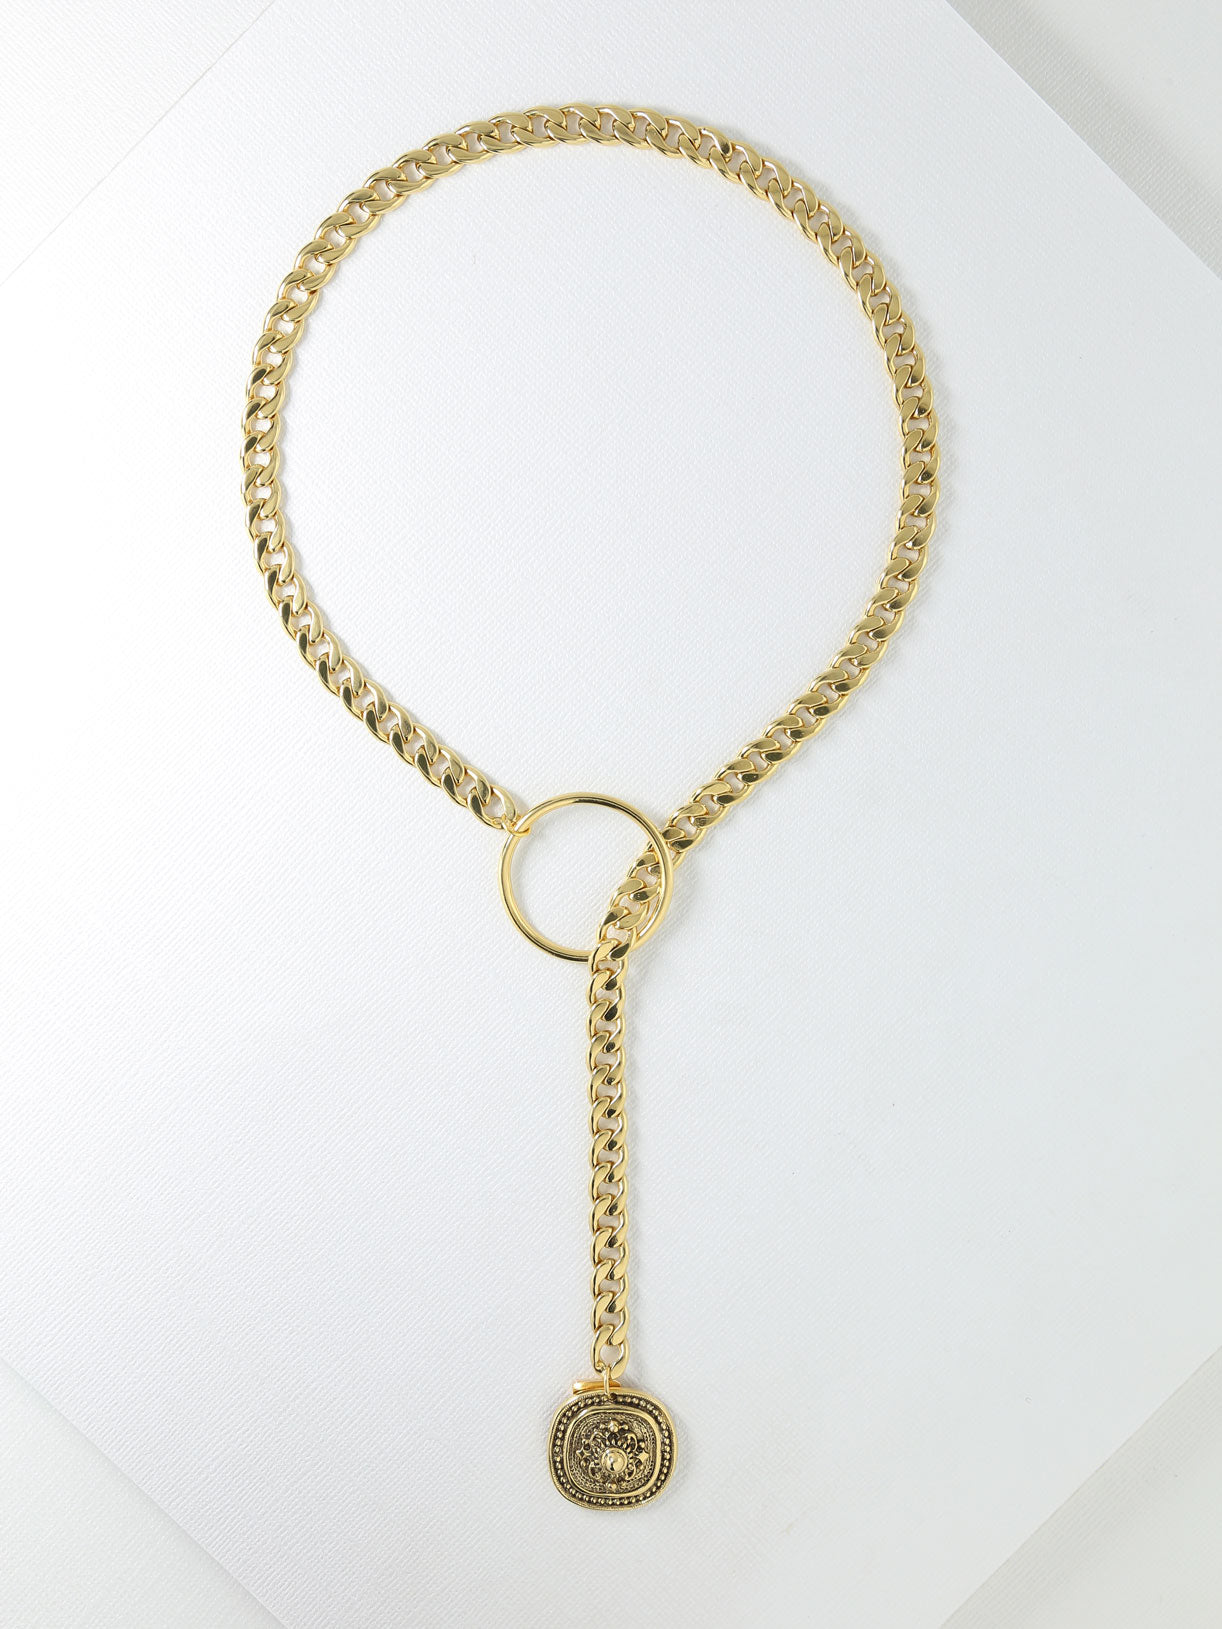 The Deva Necklace